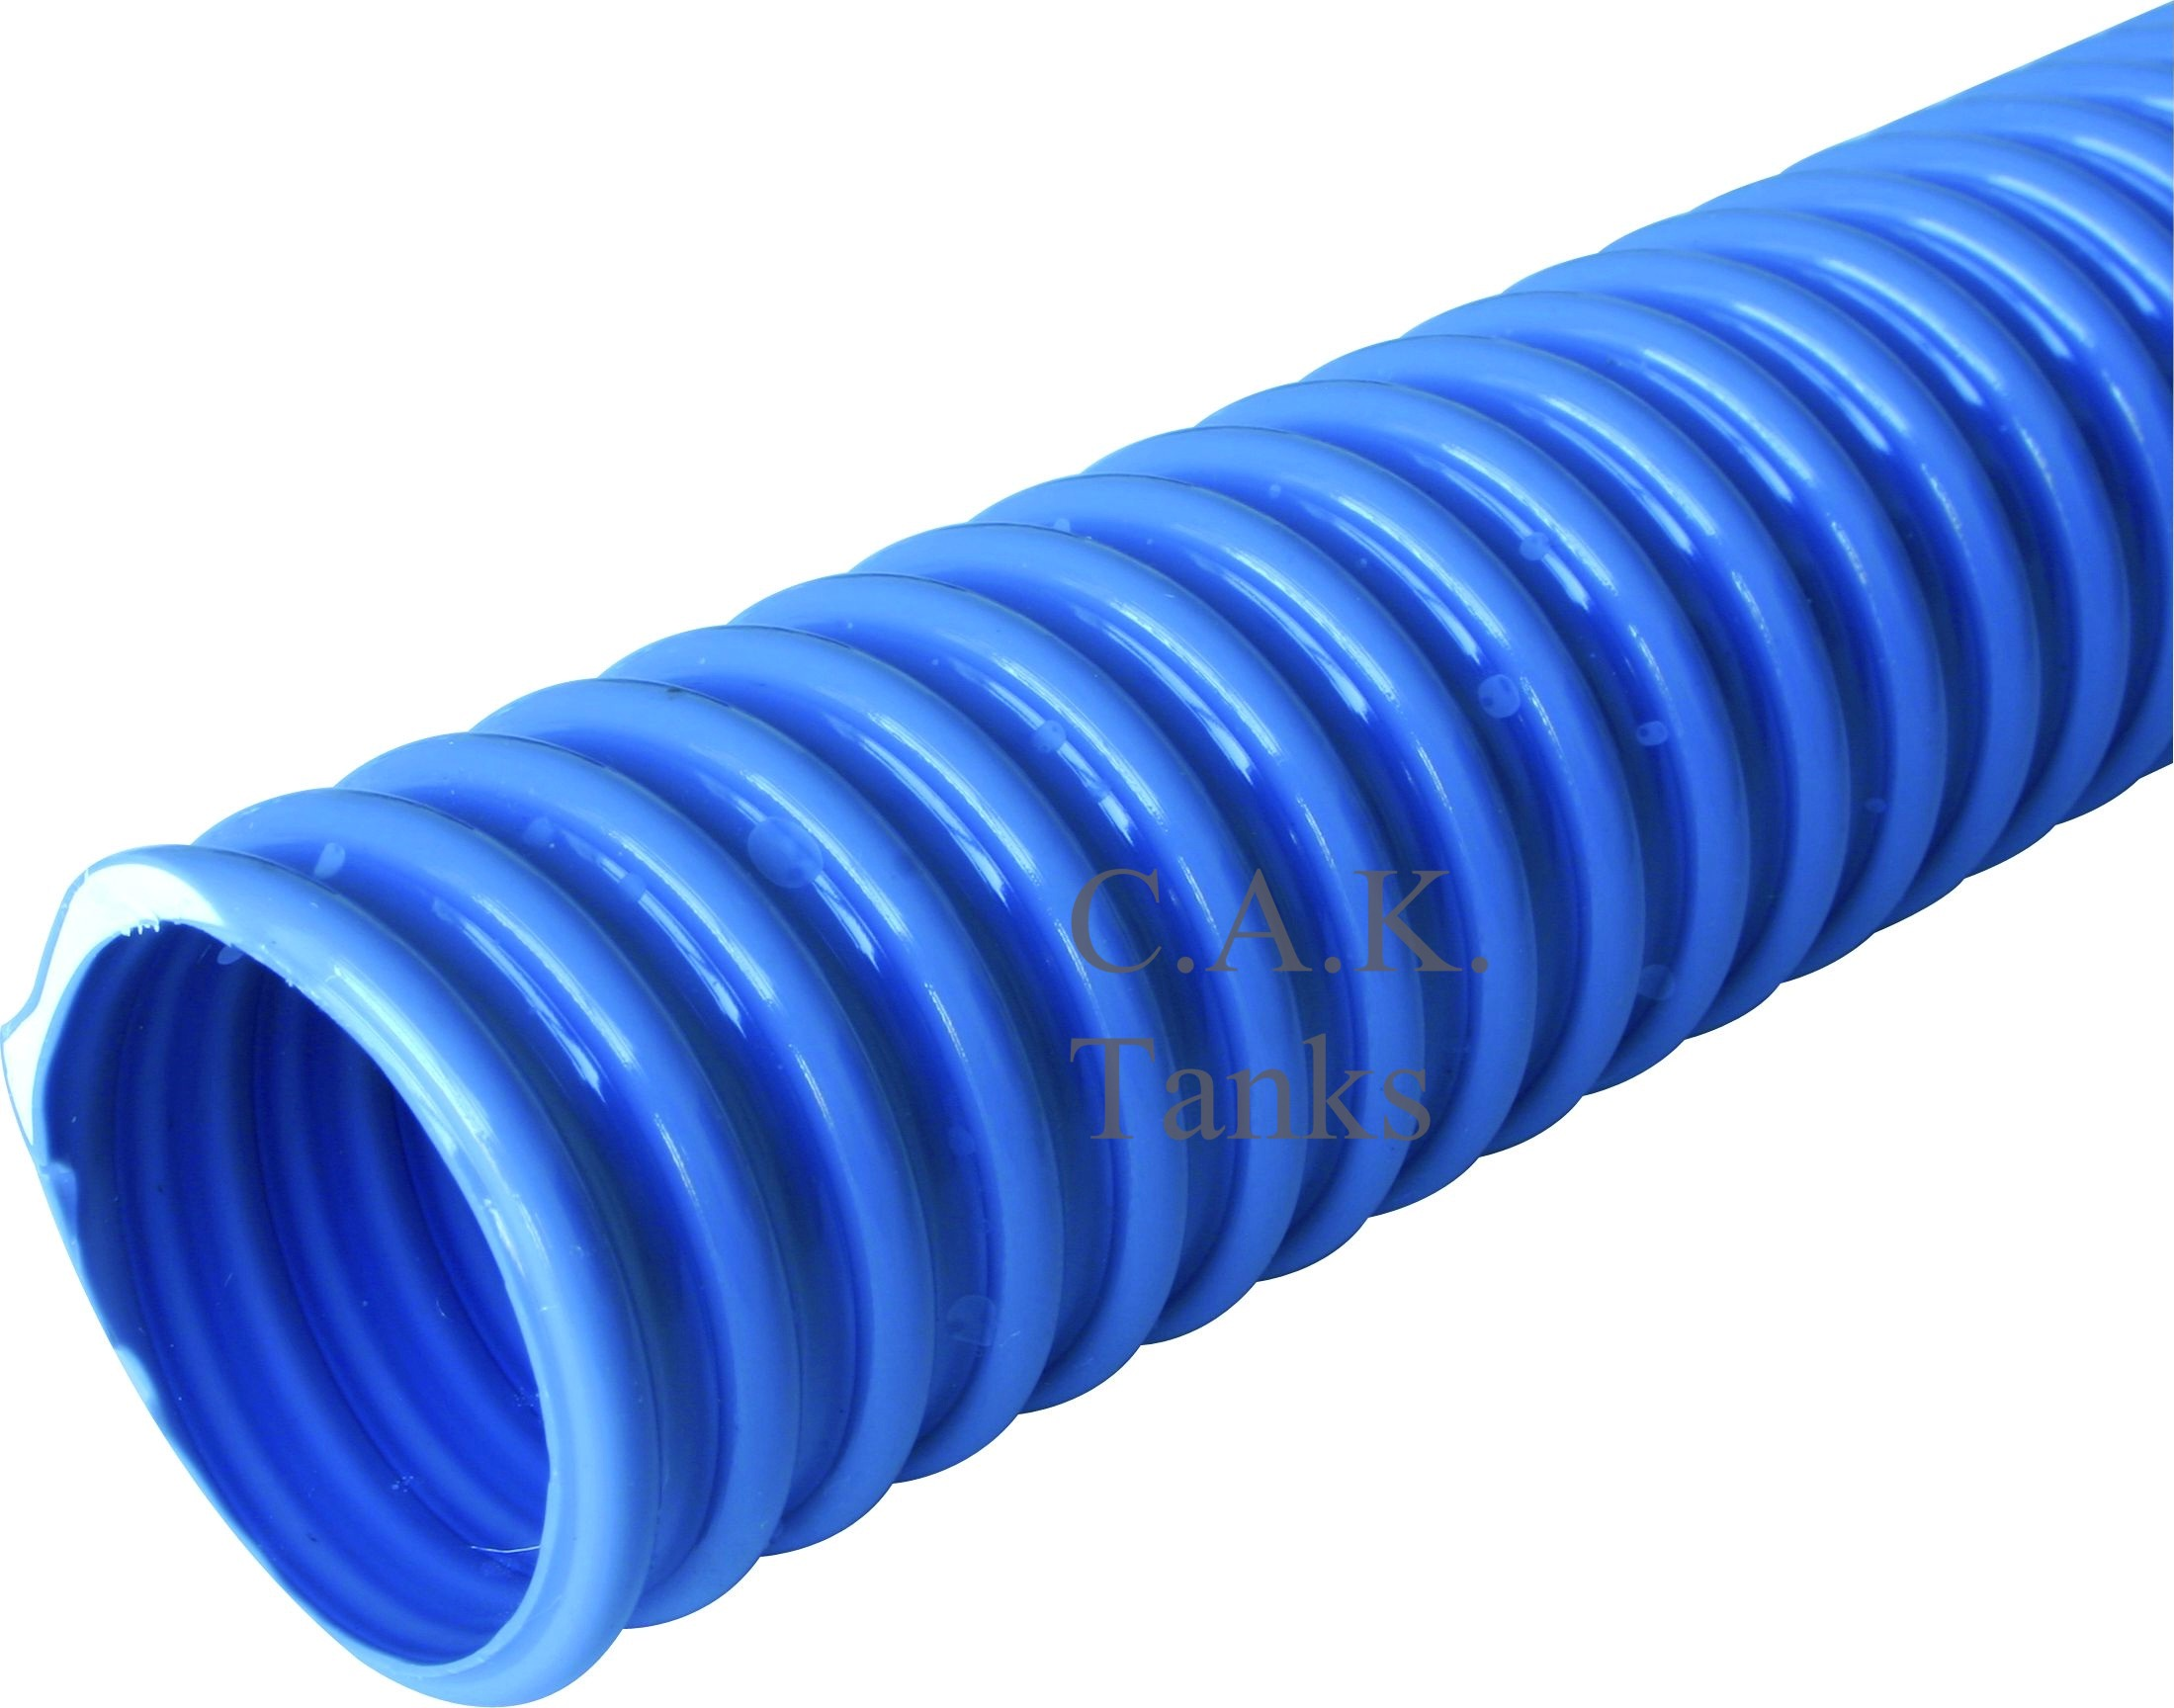 sc 1 st  Leisurelines.net & SUPAFLEX 40mm BLUE FRESH WATER FILLER HOSE